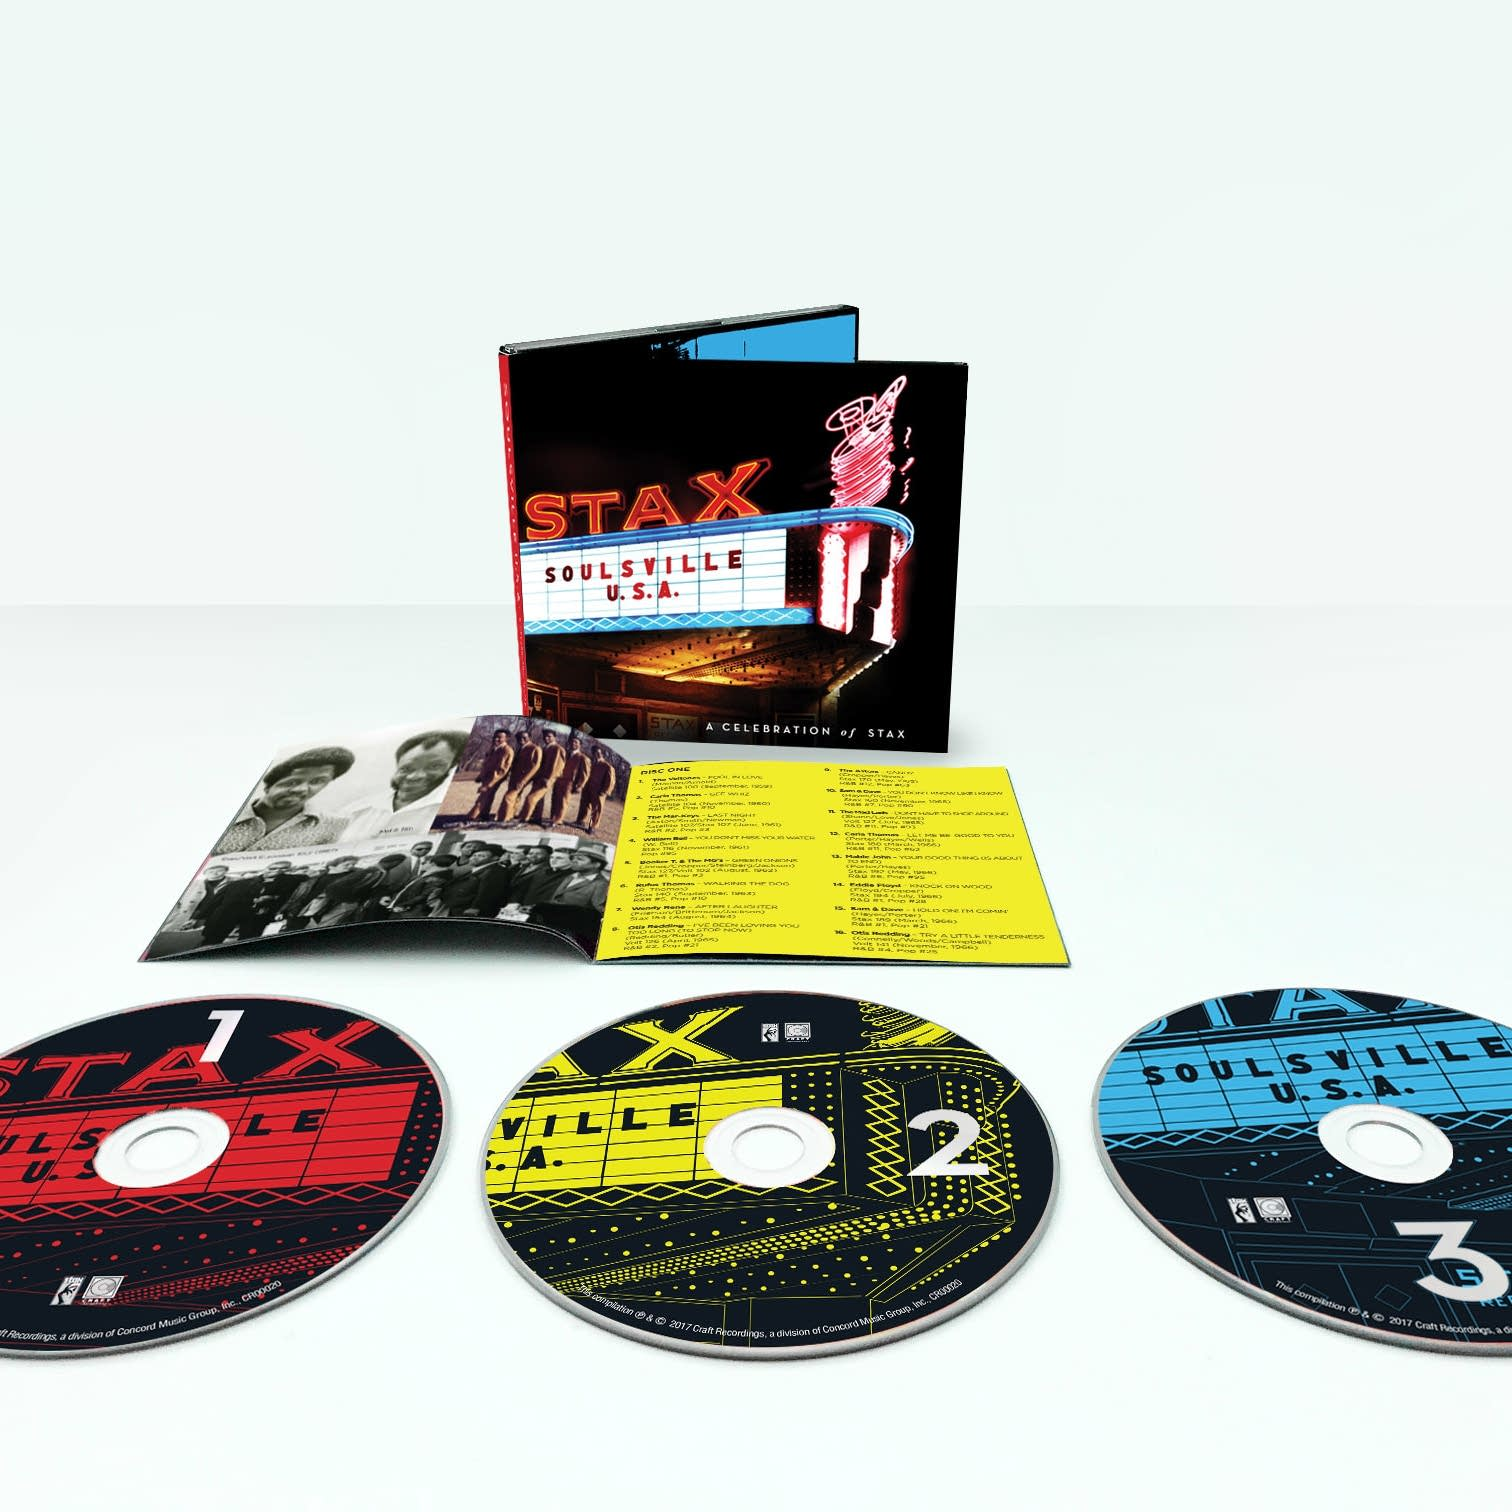 STAX 60th Anniversary albums